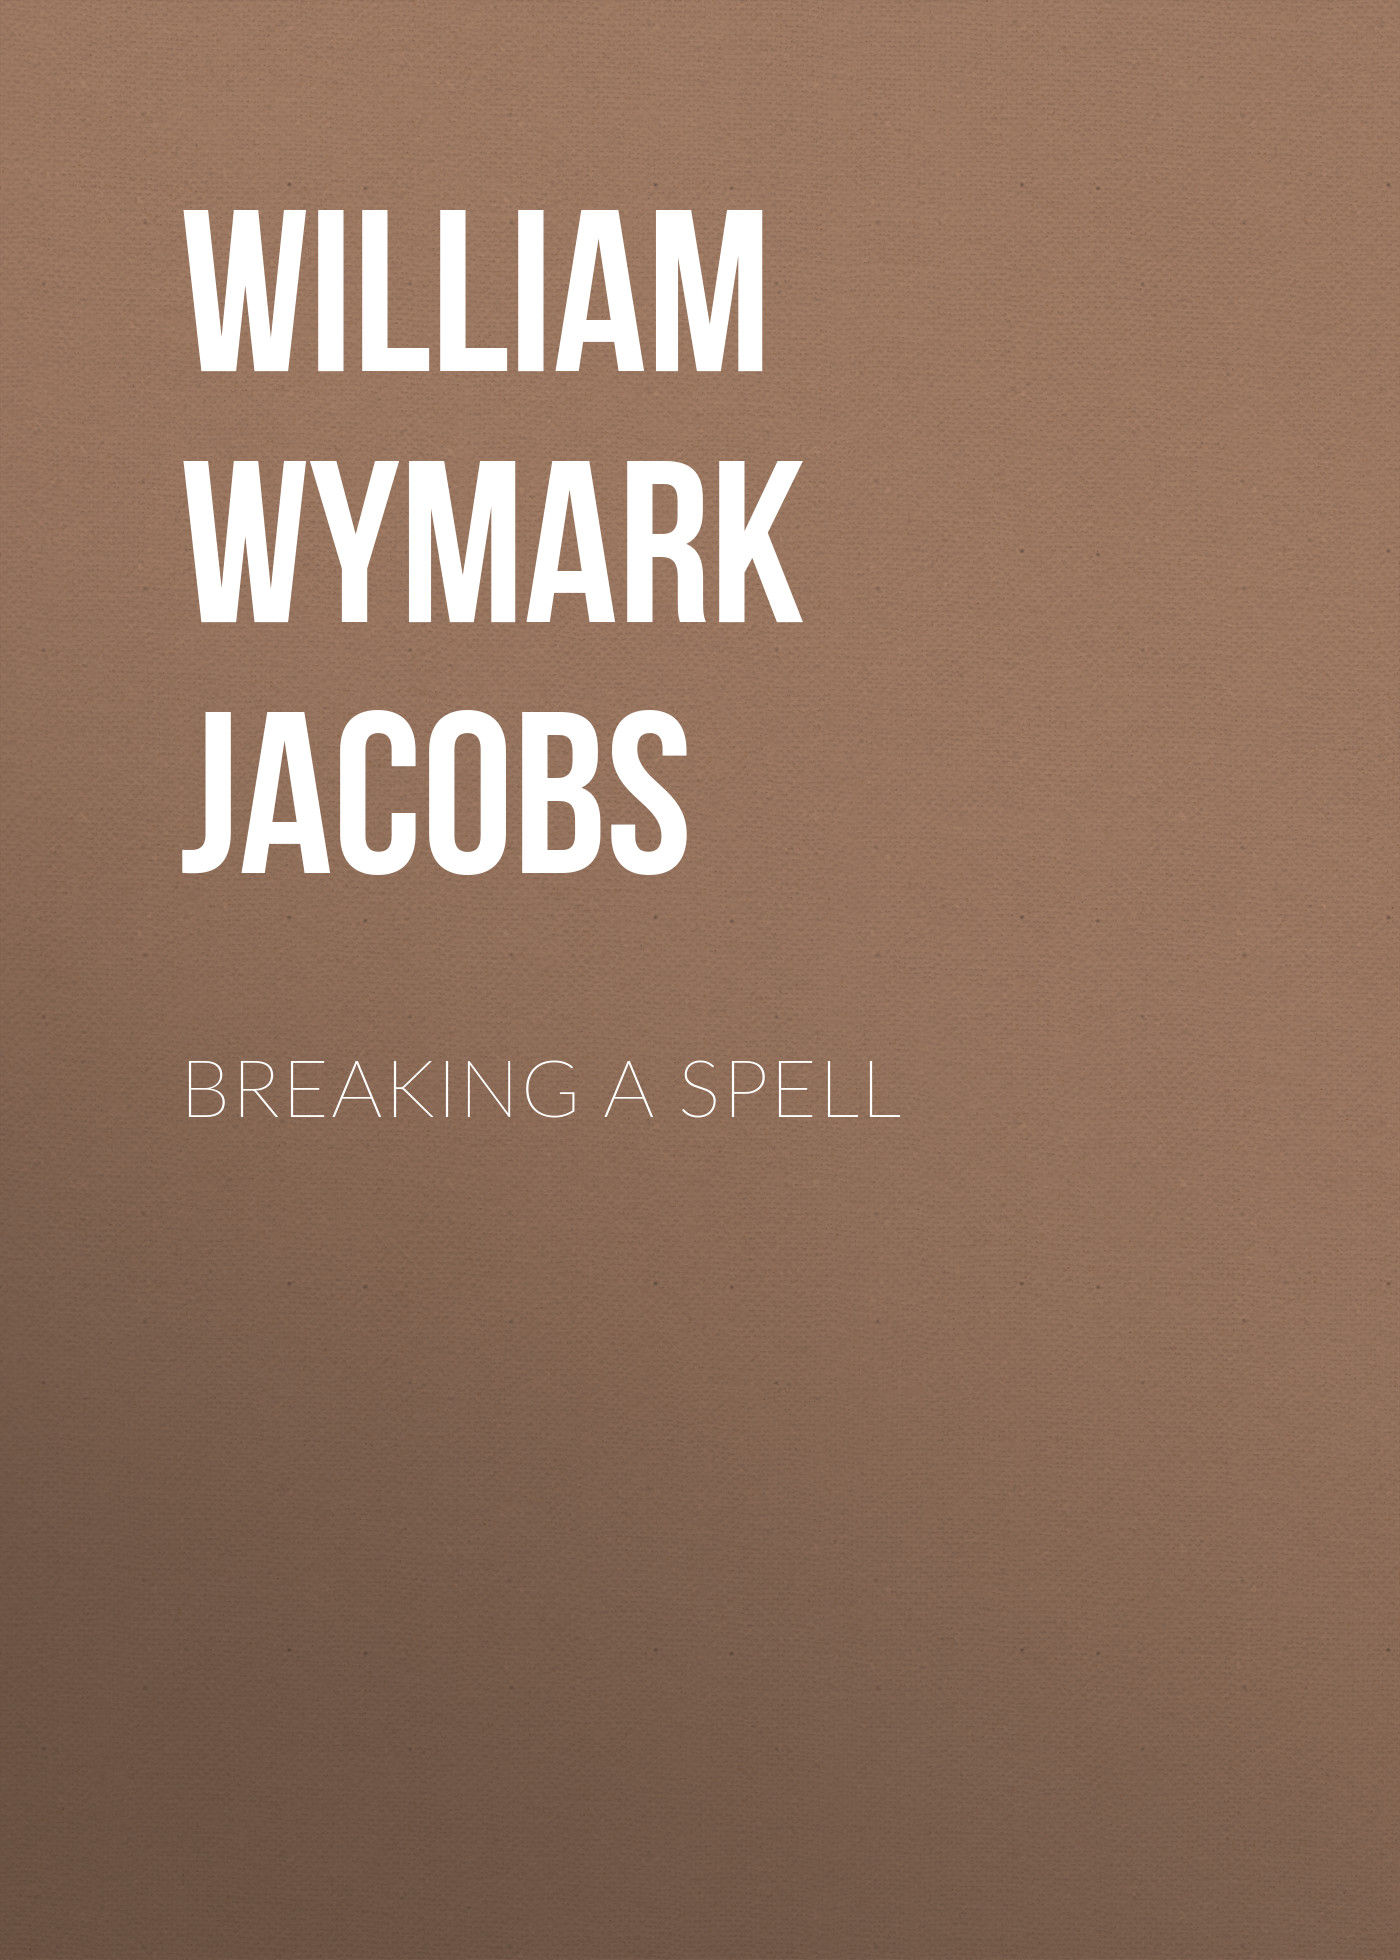 William Wymark Jacobs Breaking a Spell william wymark jacobs breaking a spell